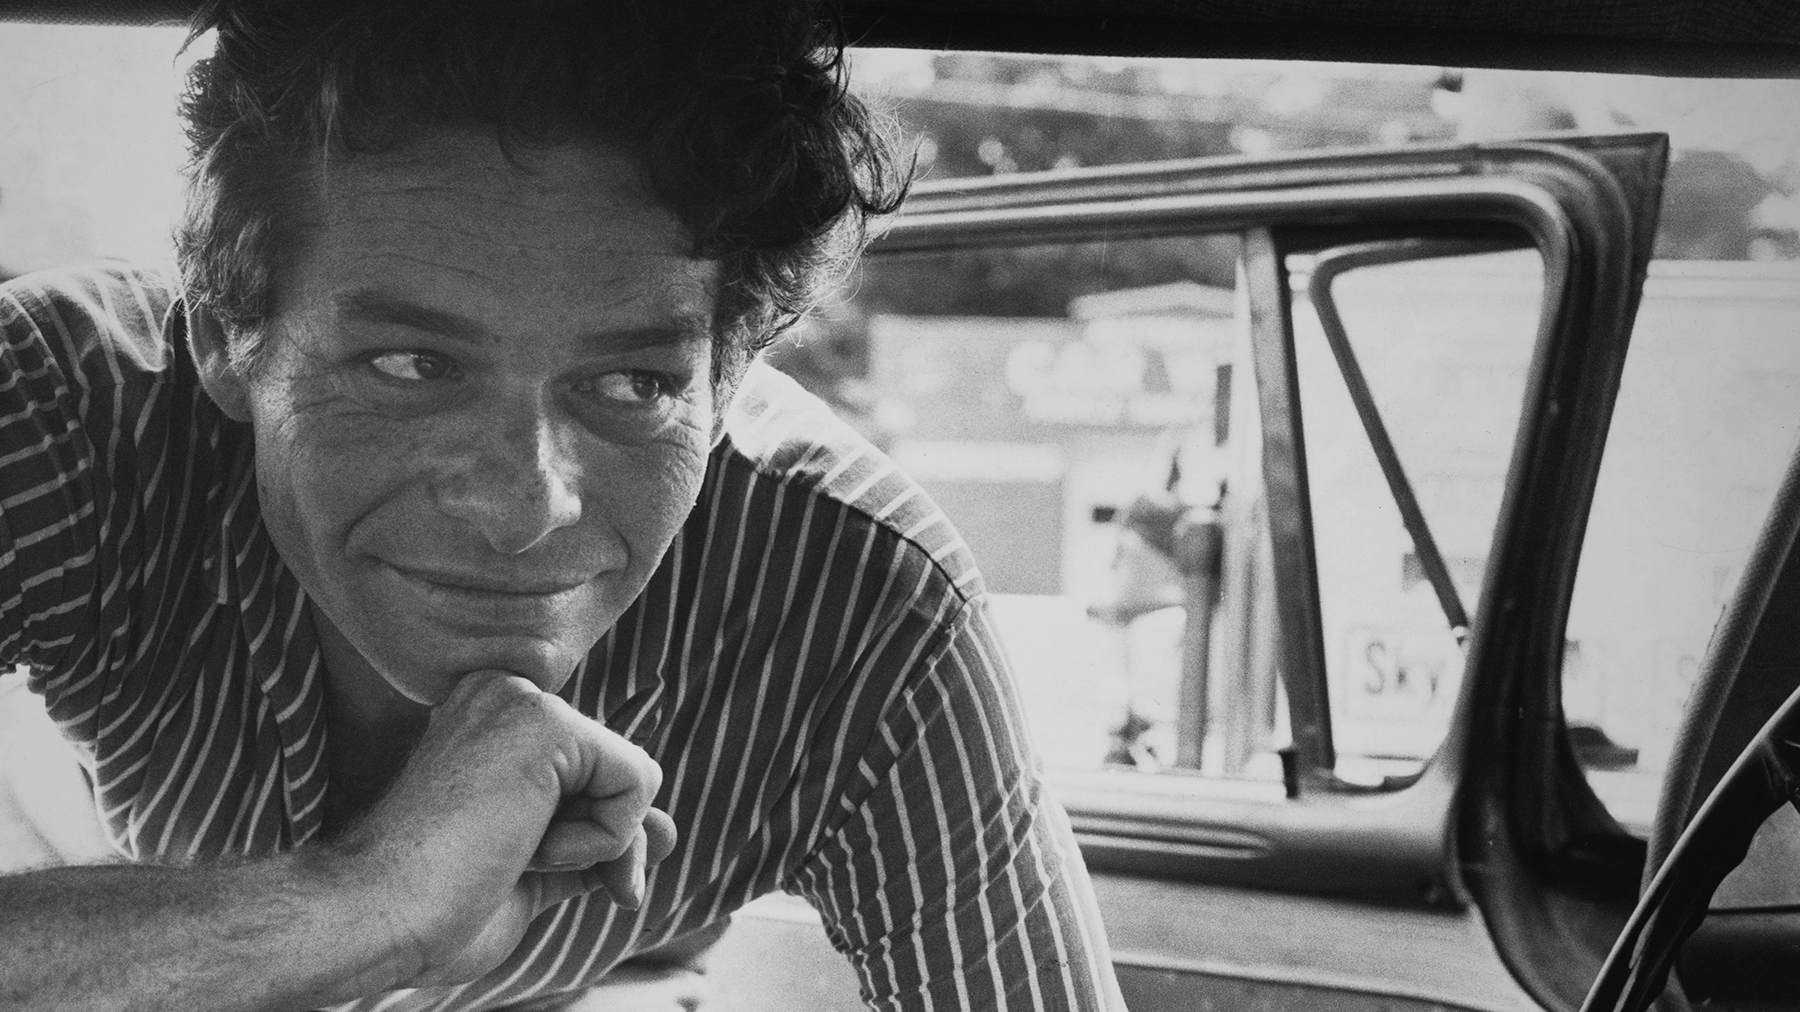 Garry Winogrand: All Things are Photographable - About